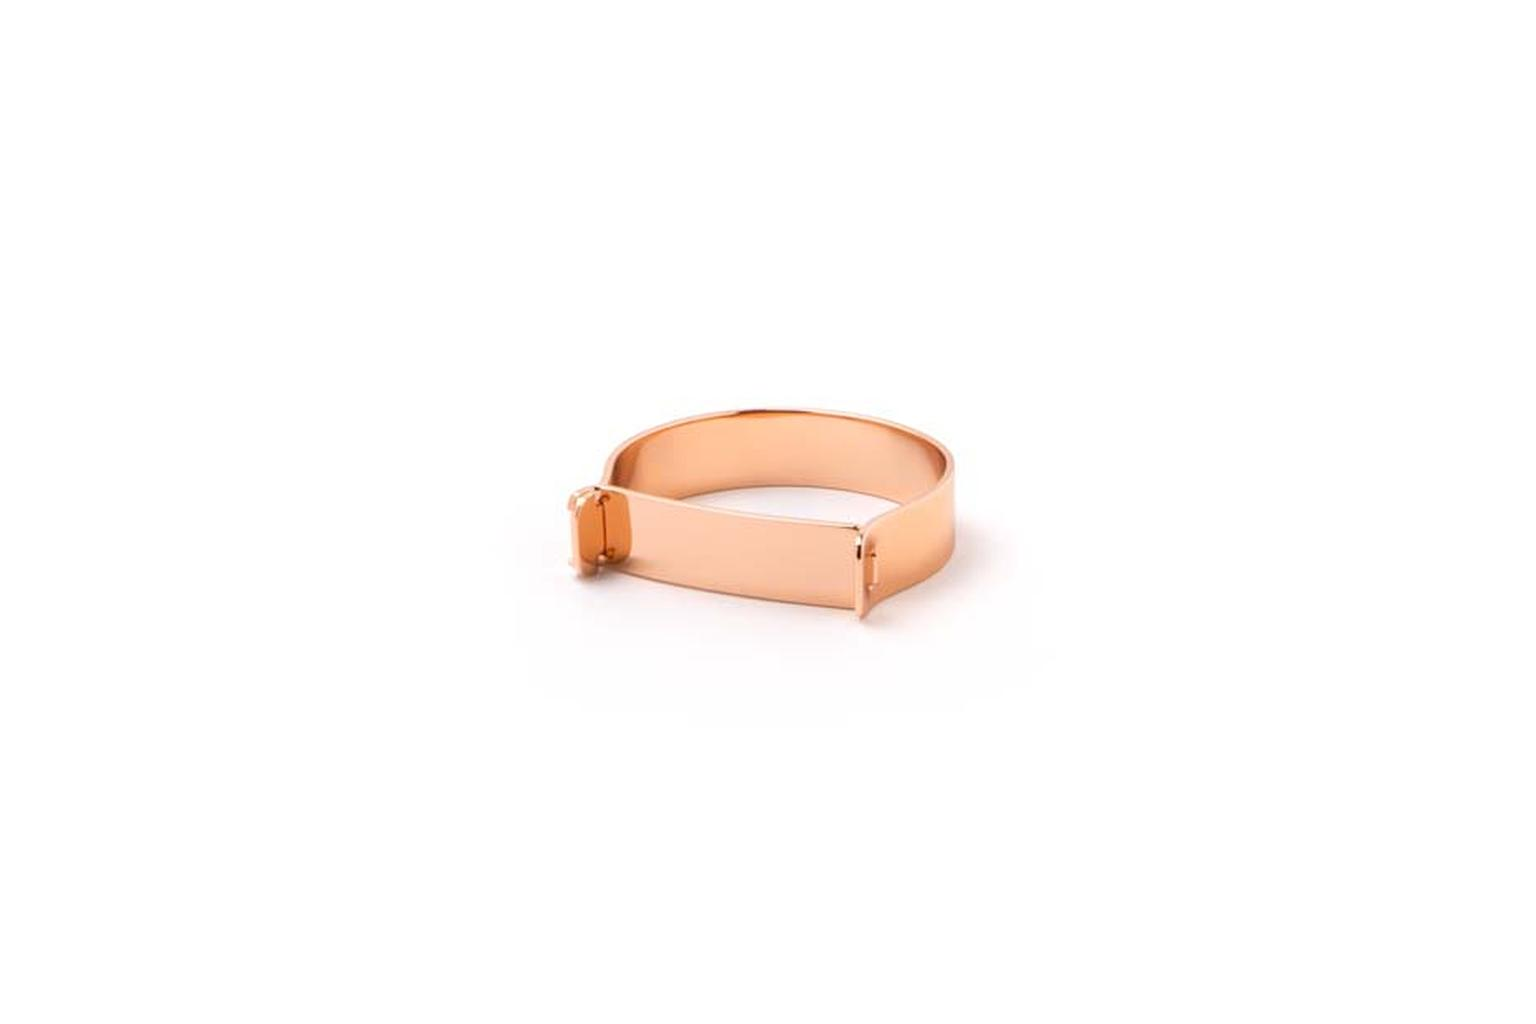 Hudson ring for men in rose gold.